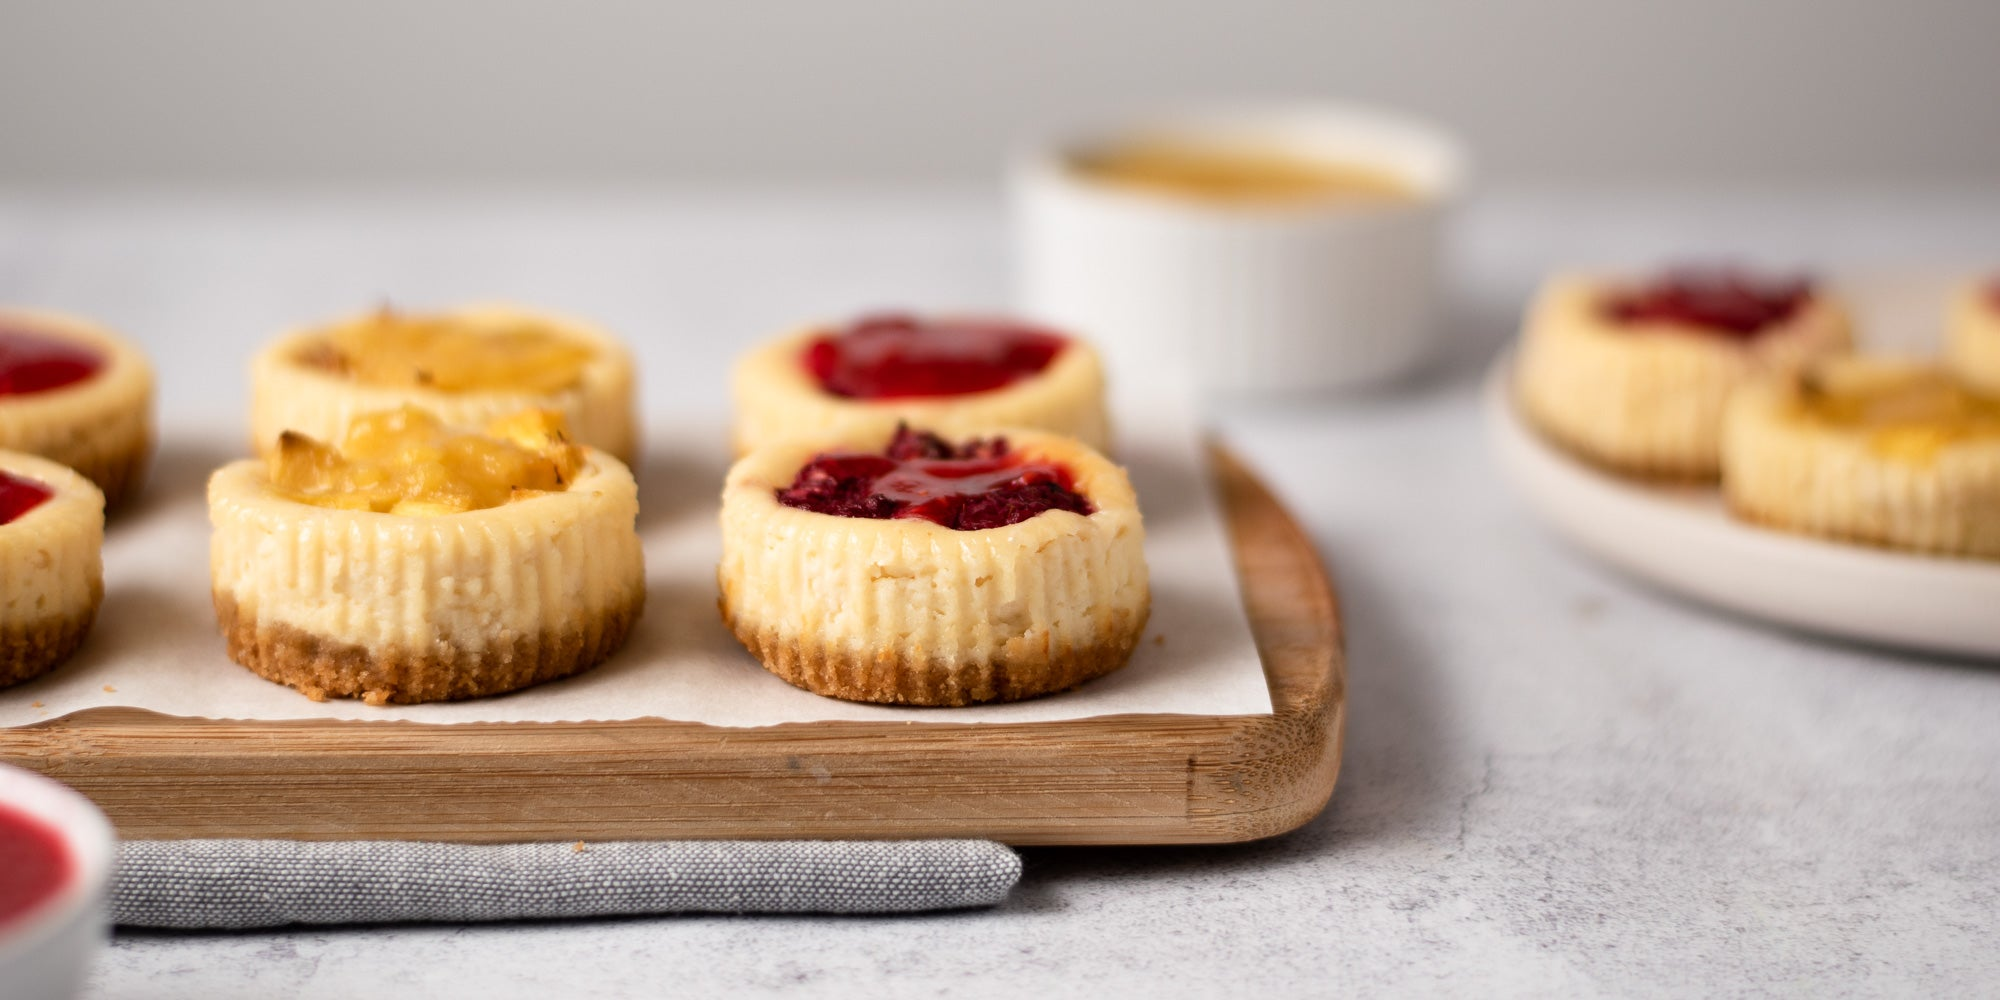 Mini cheesecakes topped with fruit on a wooden board